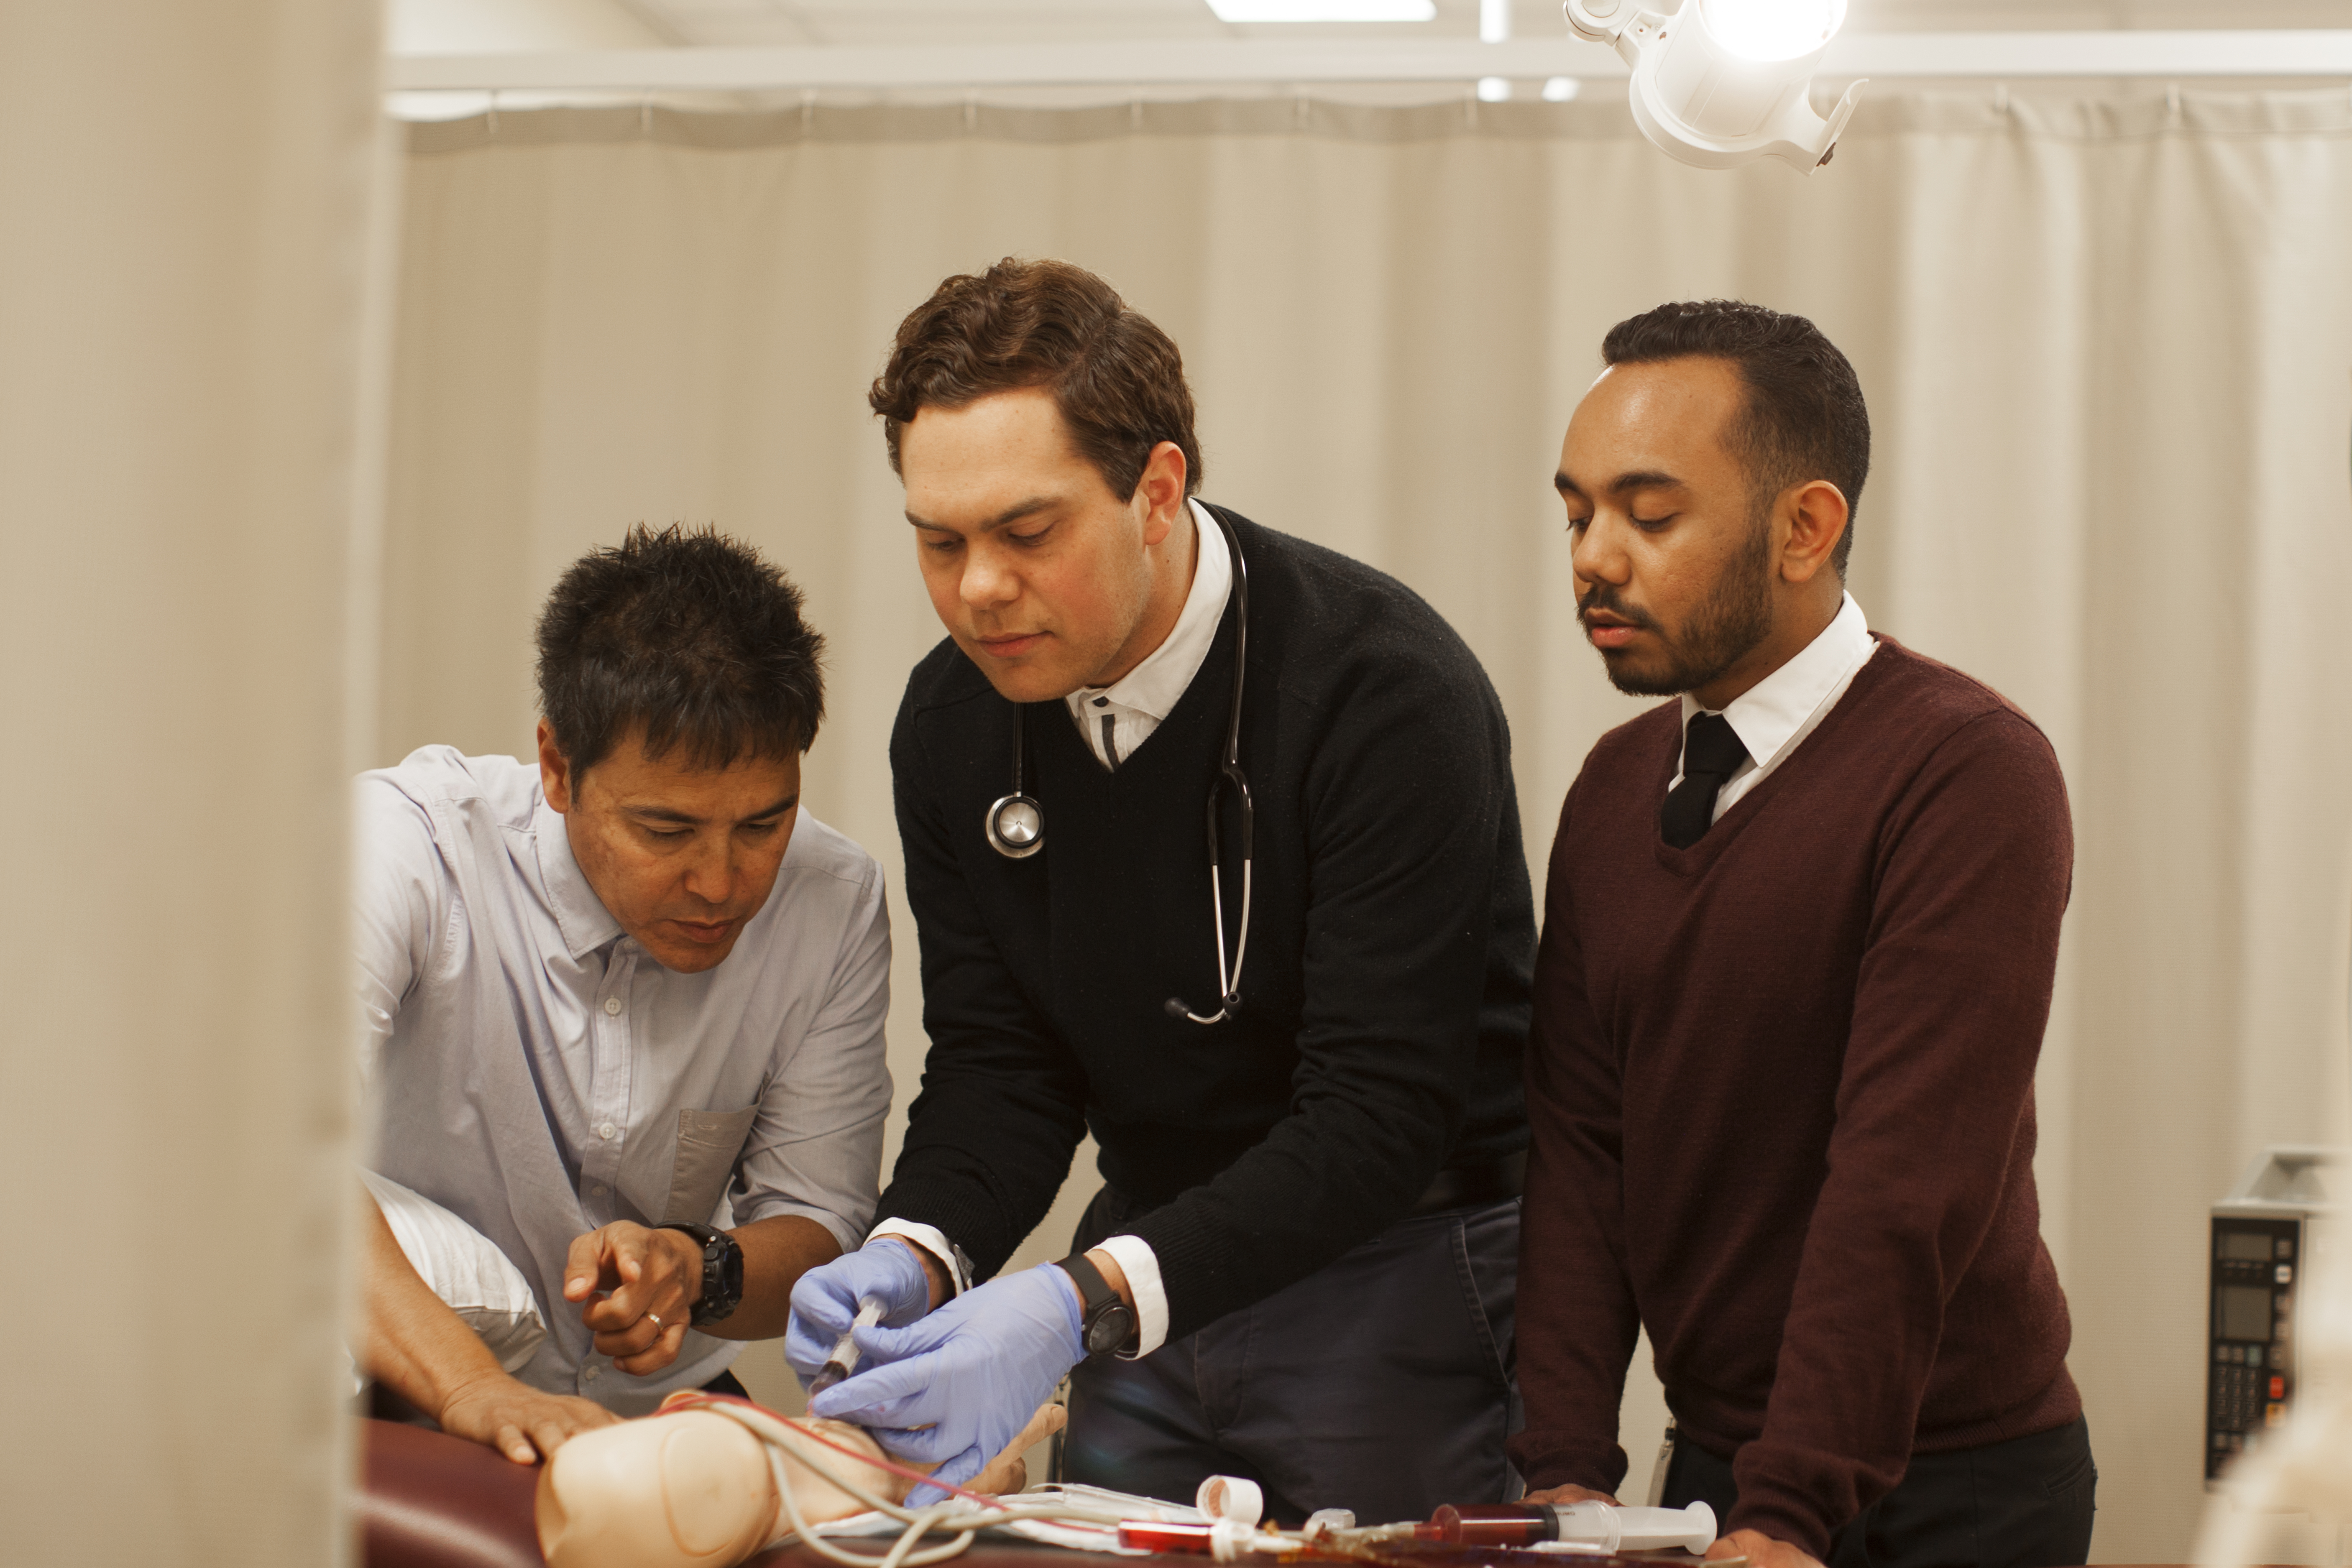 Three medicine students working in a simulated clinical workplace